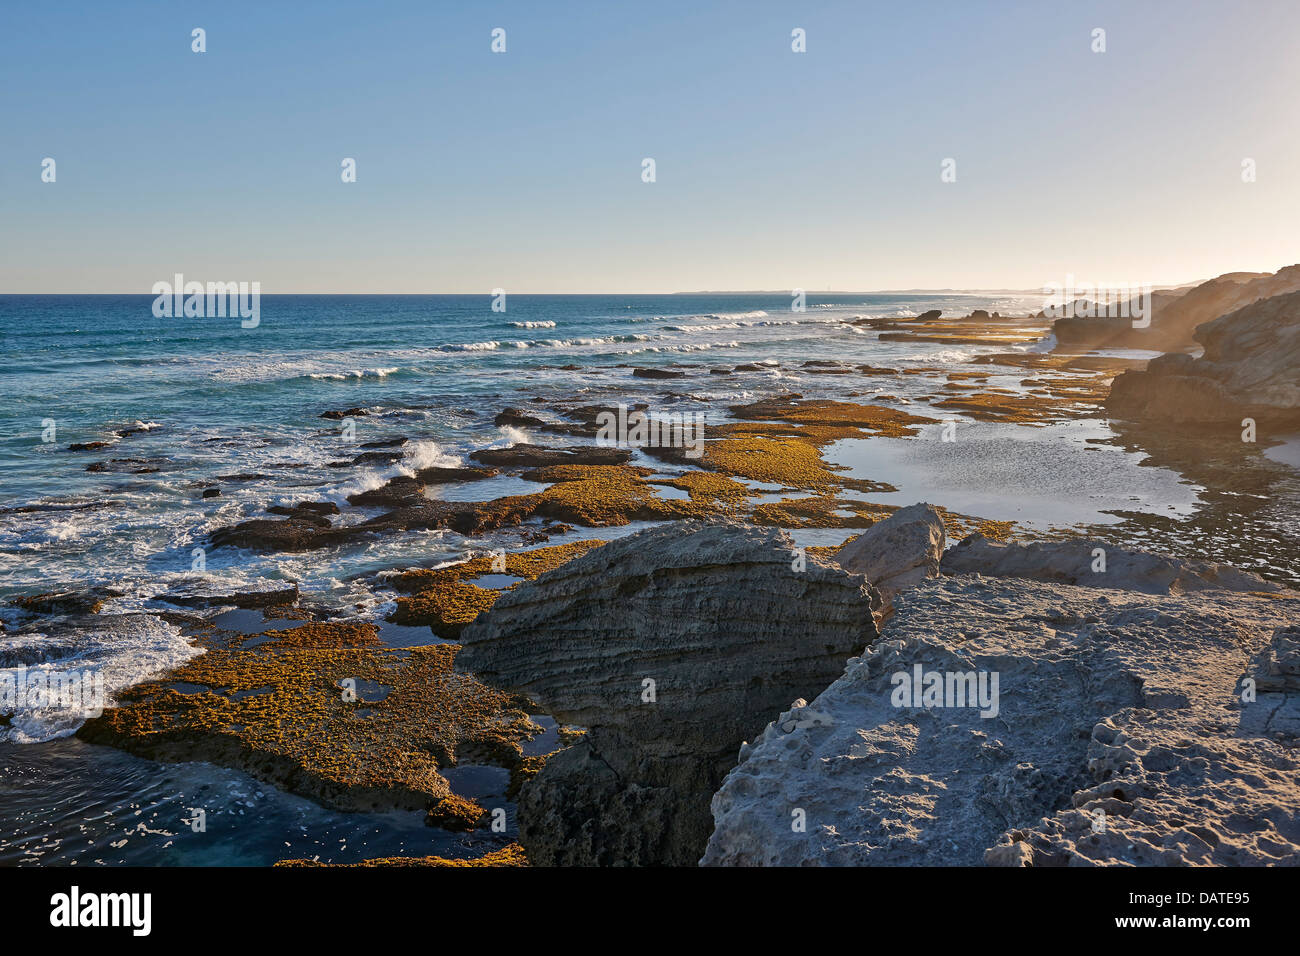 rocky beach in De Hoop Nature Reserve, Western Cape, South Africa - Stock Image